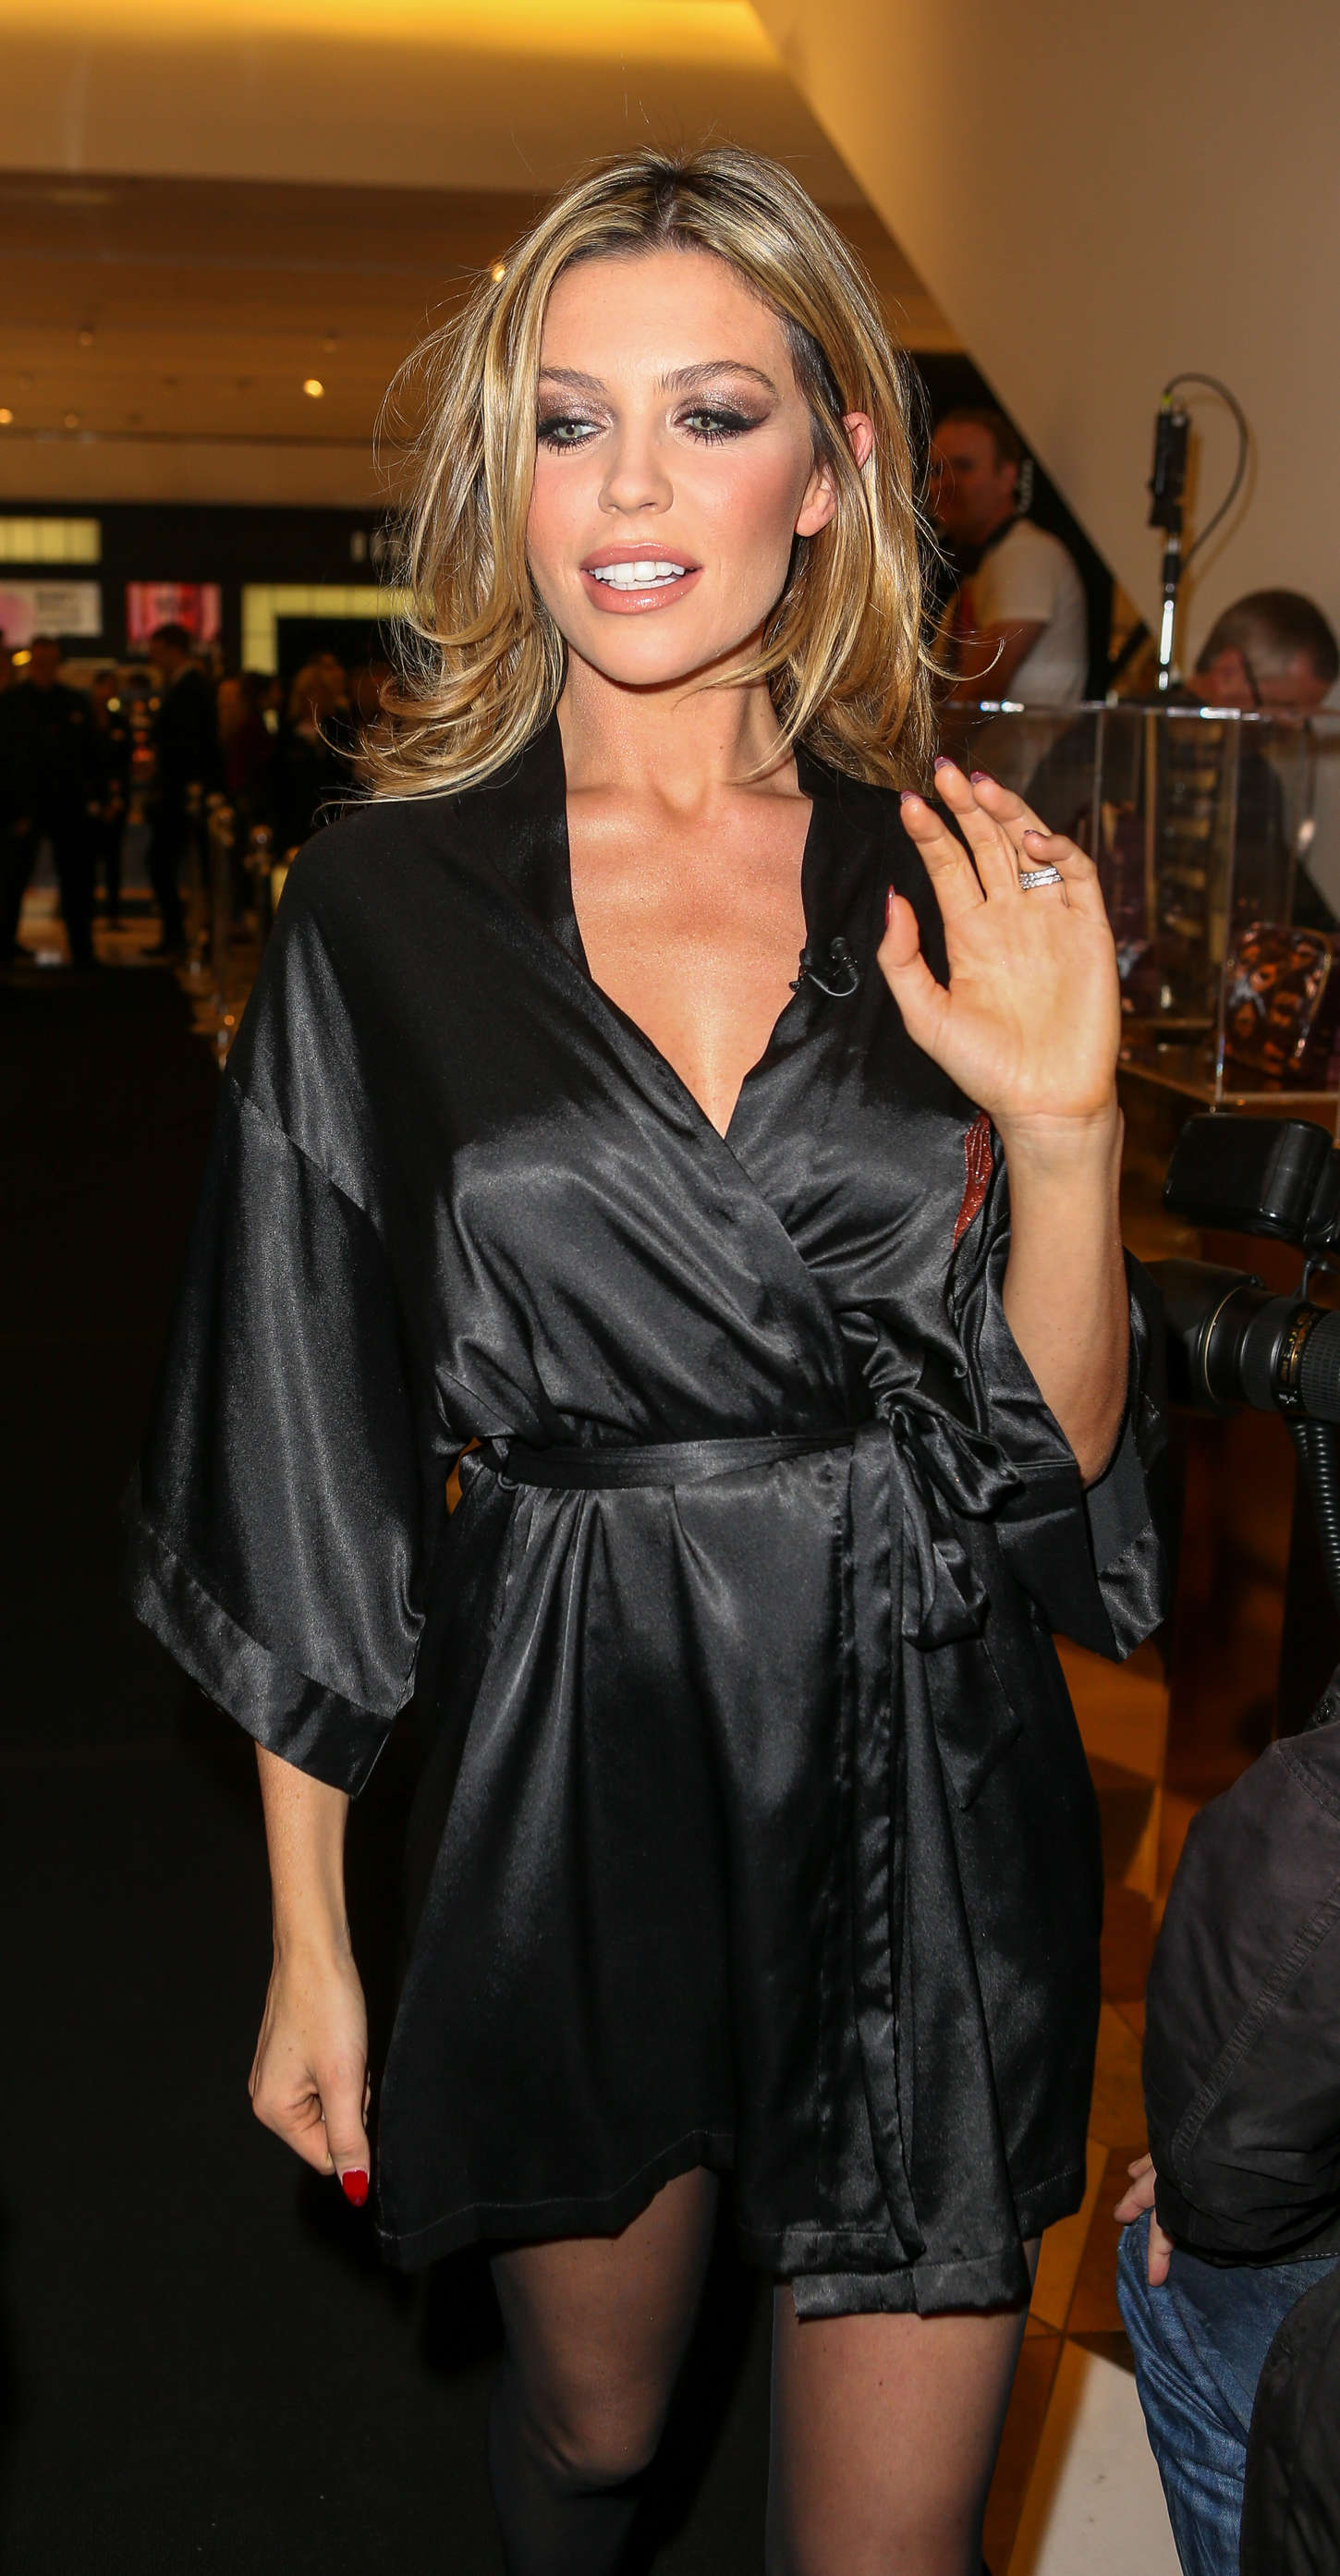 Abbey Clancy In Black Mini Dress 17 Gotceleb